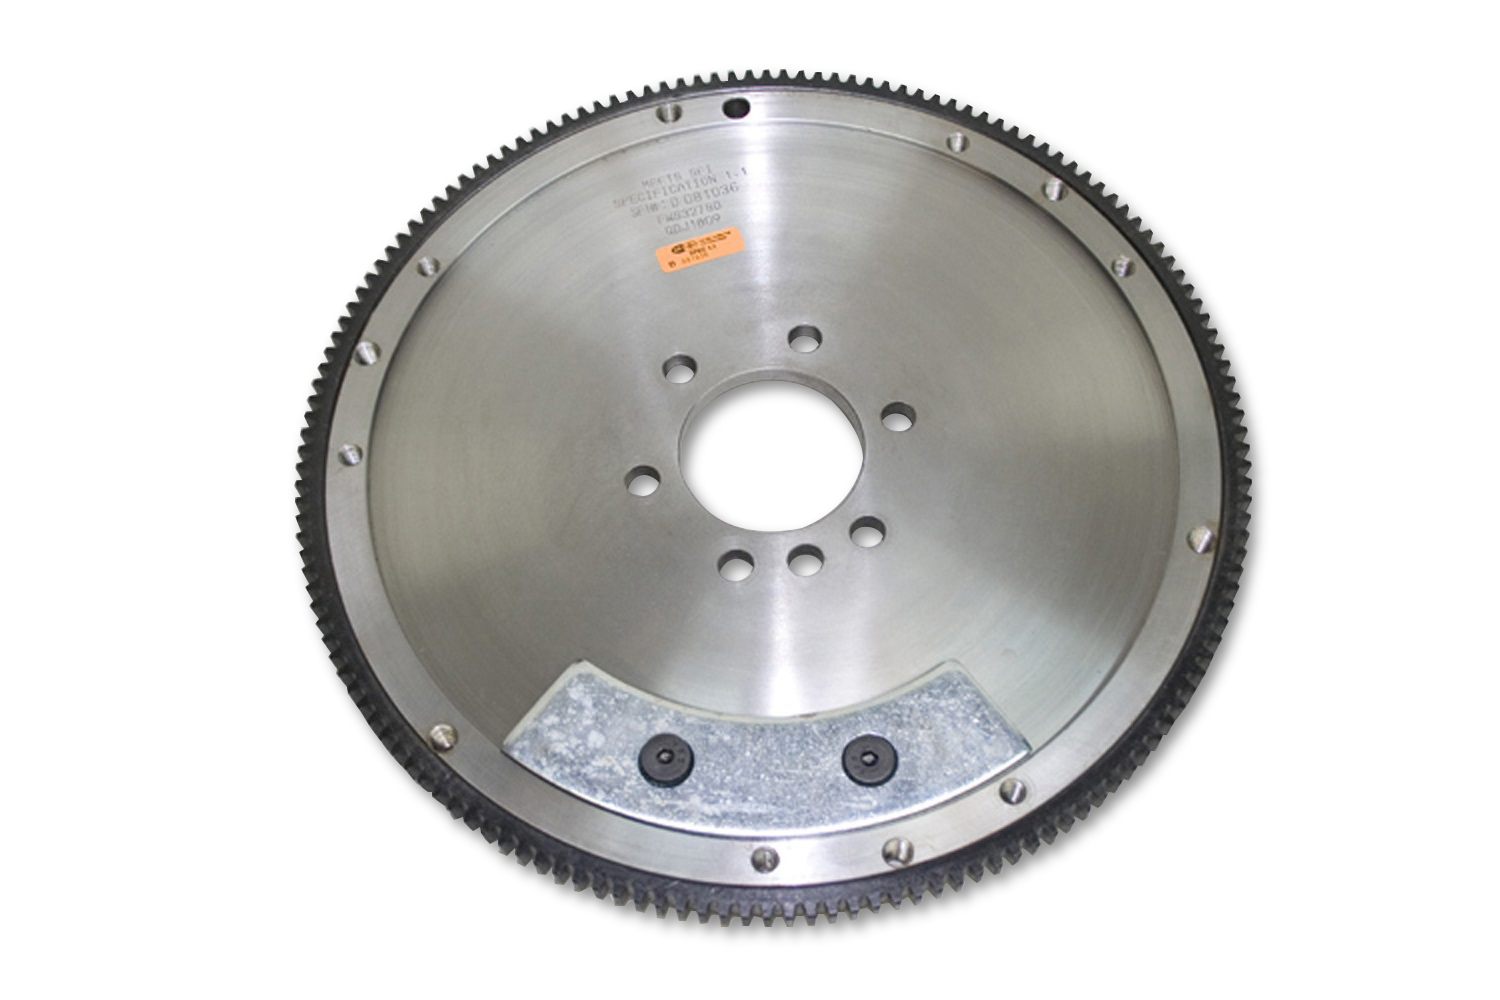 10-137 Hays Clutch Flywheel Use With 1990 To 2000 Chevy 454 CID Big